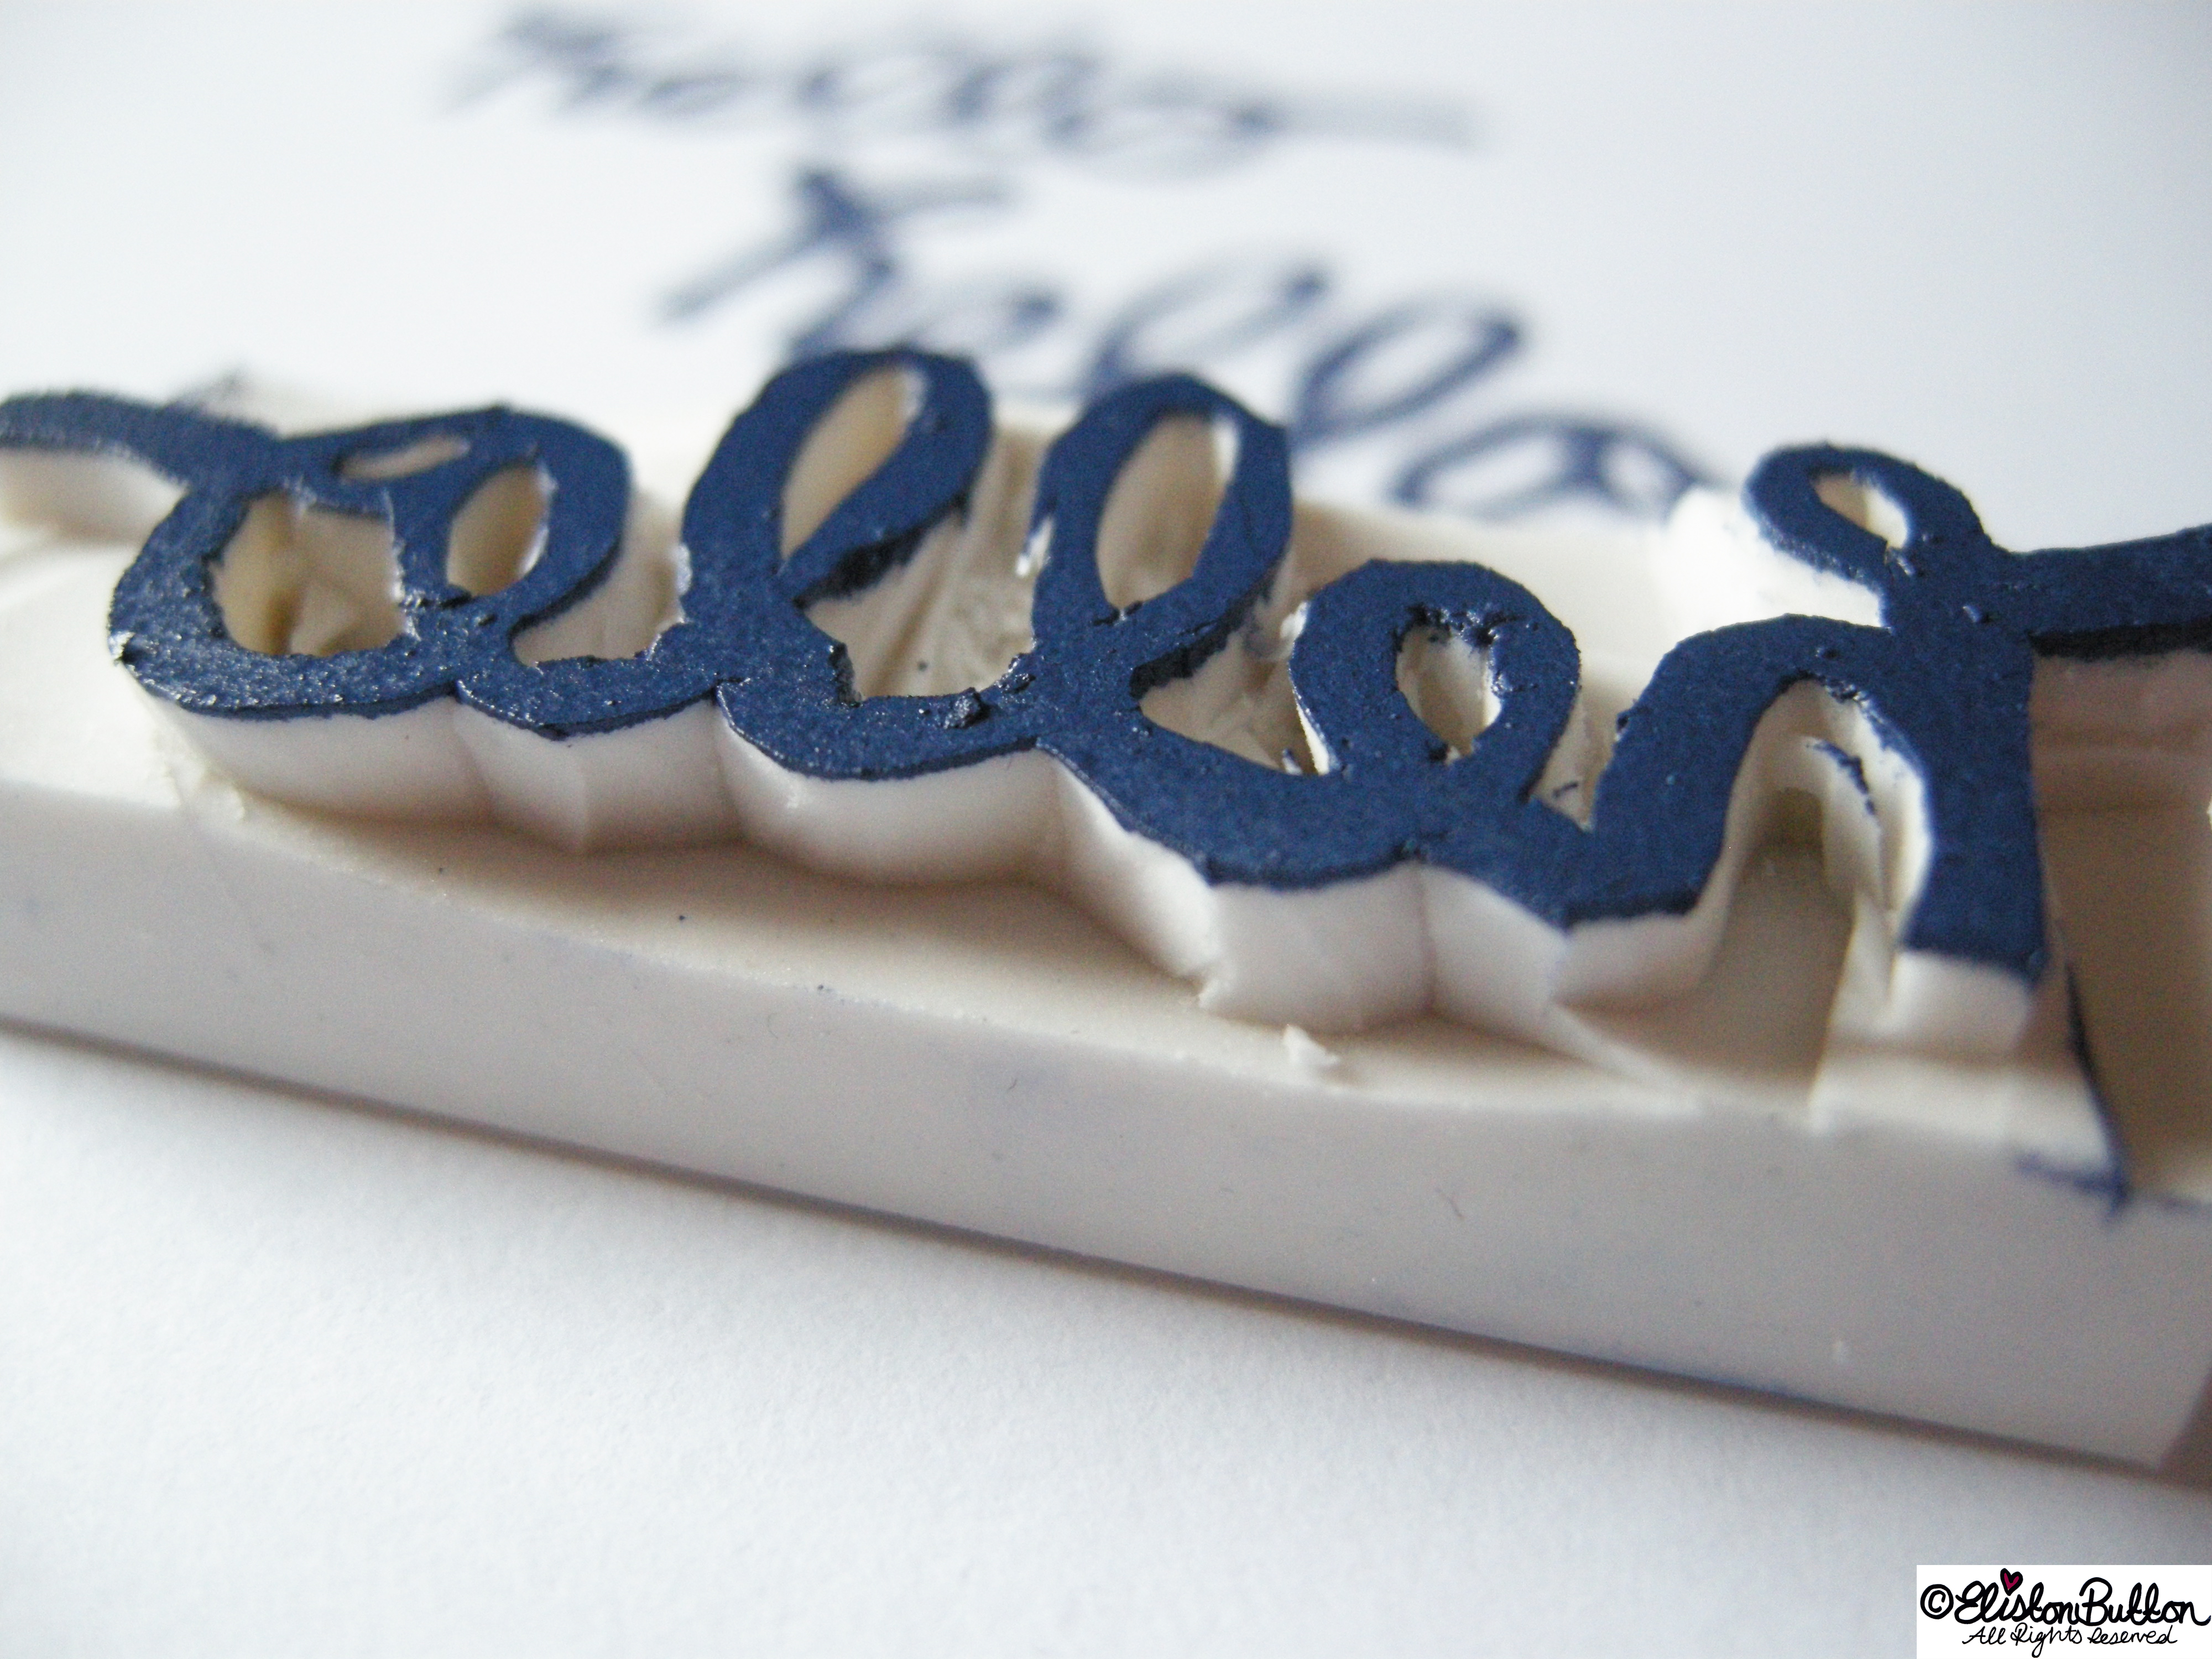 Stamped Hello with Hand Carved Stamp Close Up - Workspace Wednesday - Hello Handmade Stamps at www.elistonbutton.com - Eliston Button - That Crafty Kid – Art, Design, Craft & Adventure.